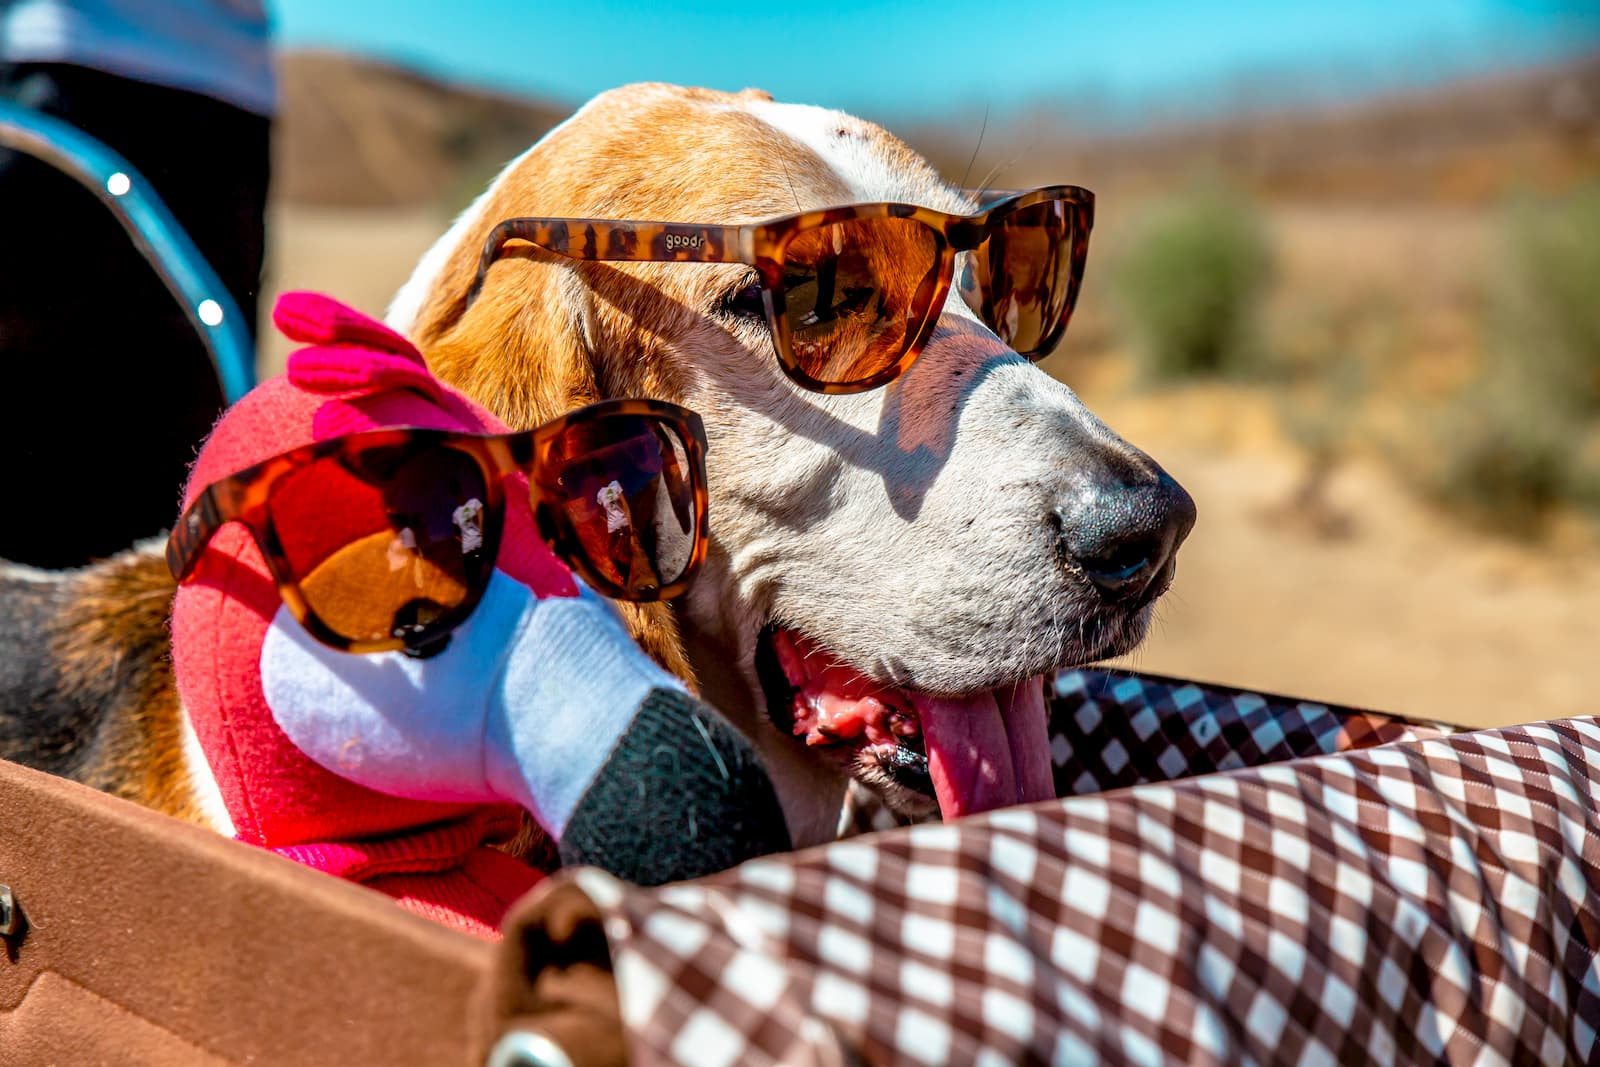 basset hound in tortoiseshell sunglasses with a flamingo